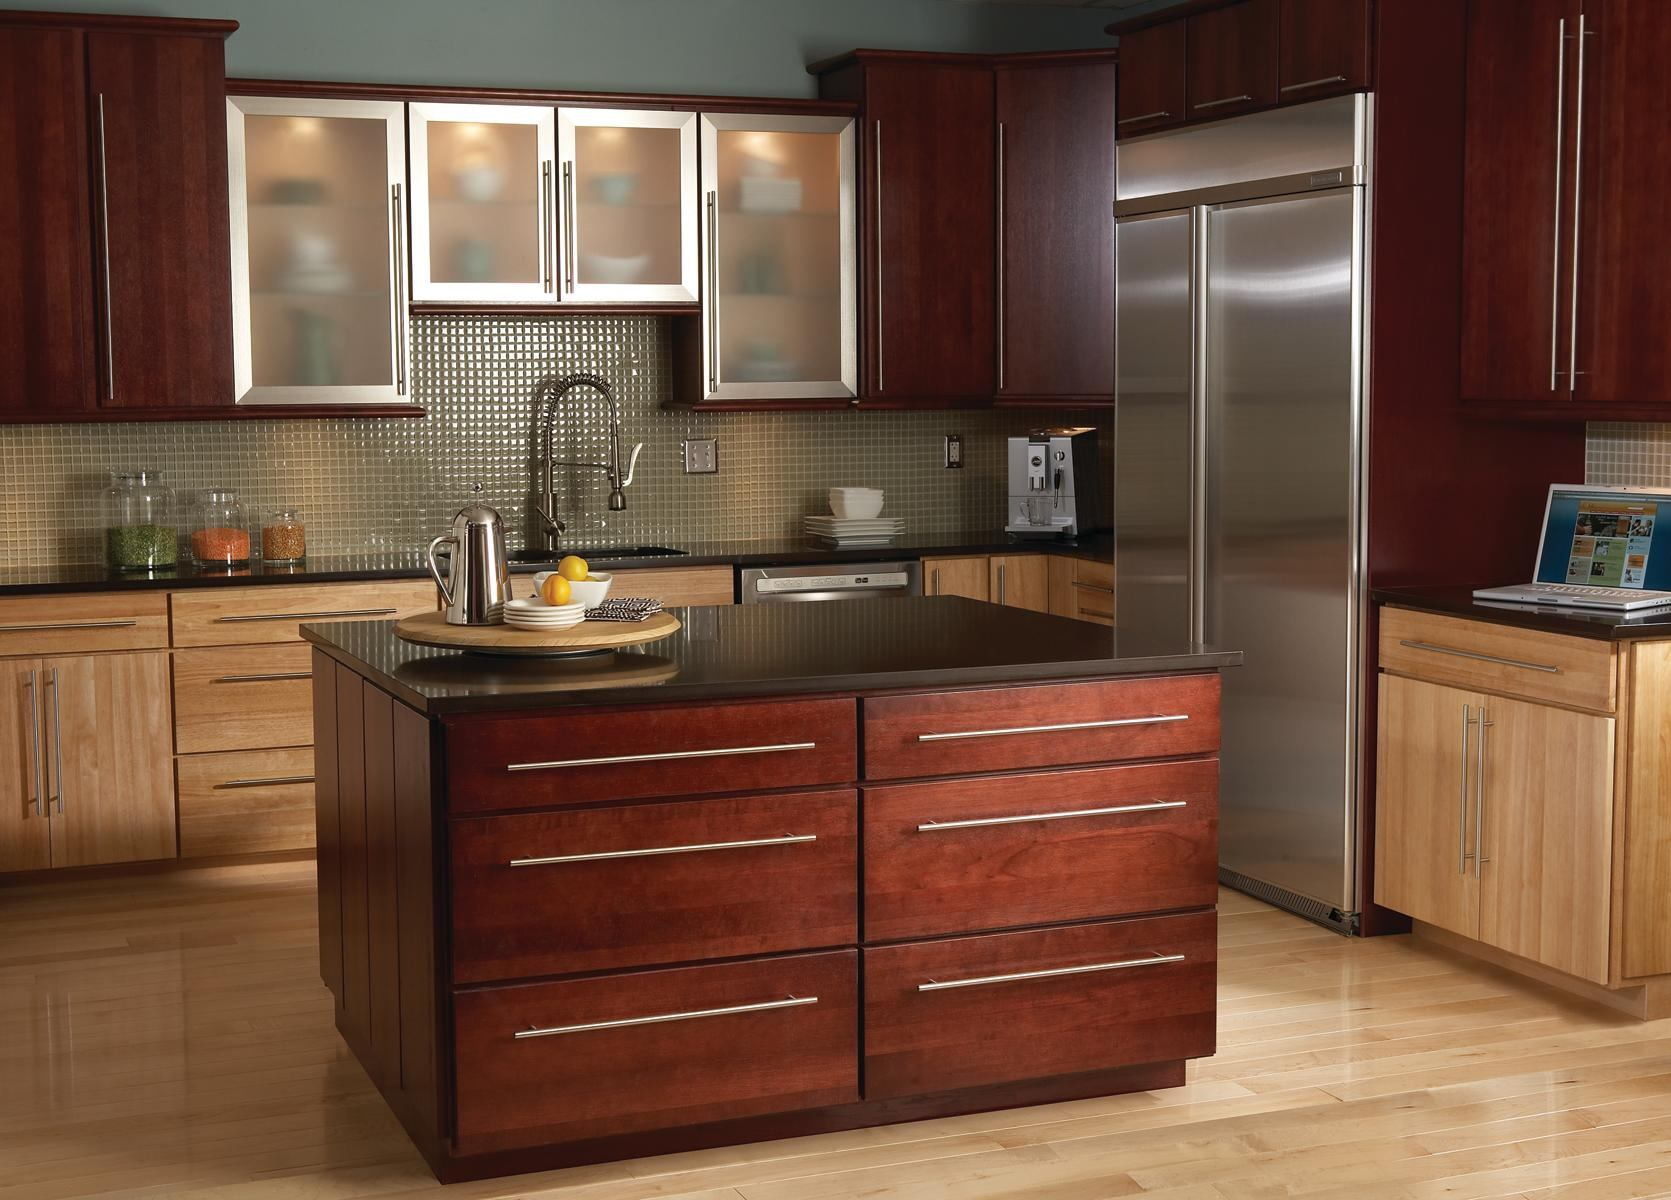 formaldehyde-free hardwood plywood cabinets from armstrong